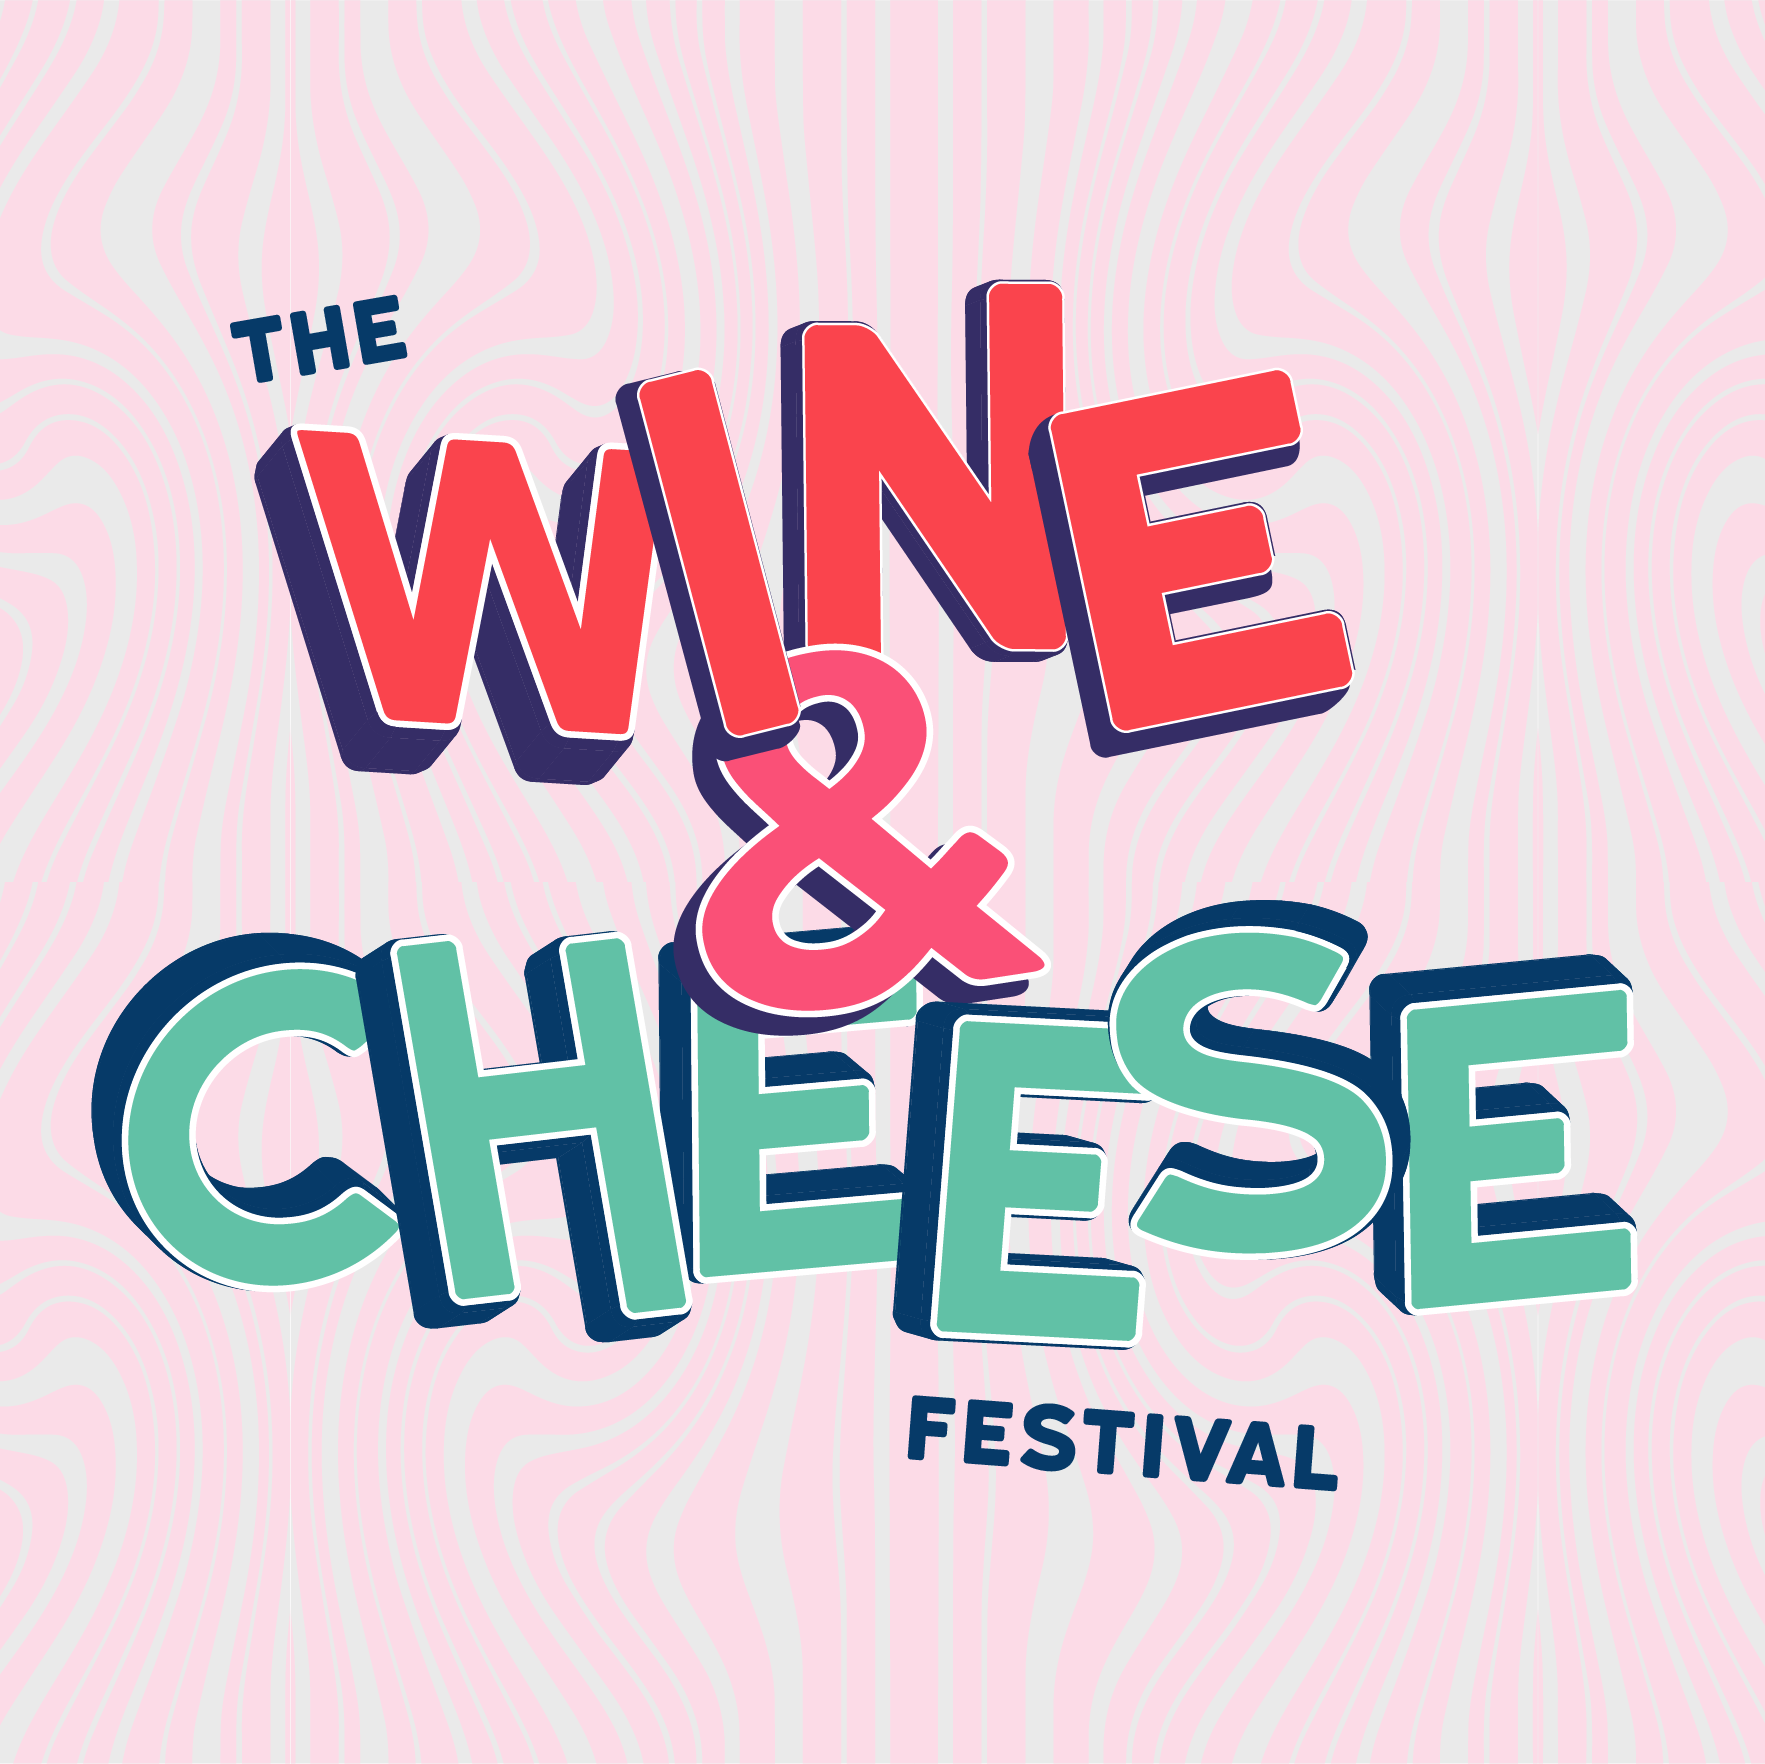 The Winter Wine & Cheese Festival